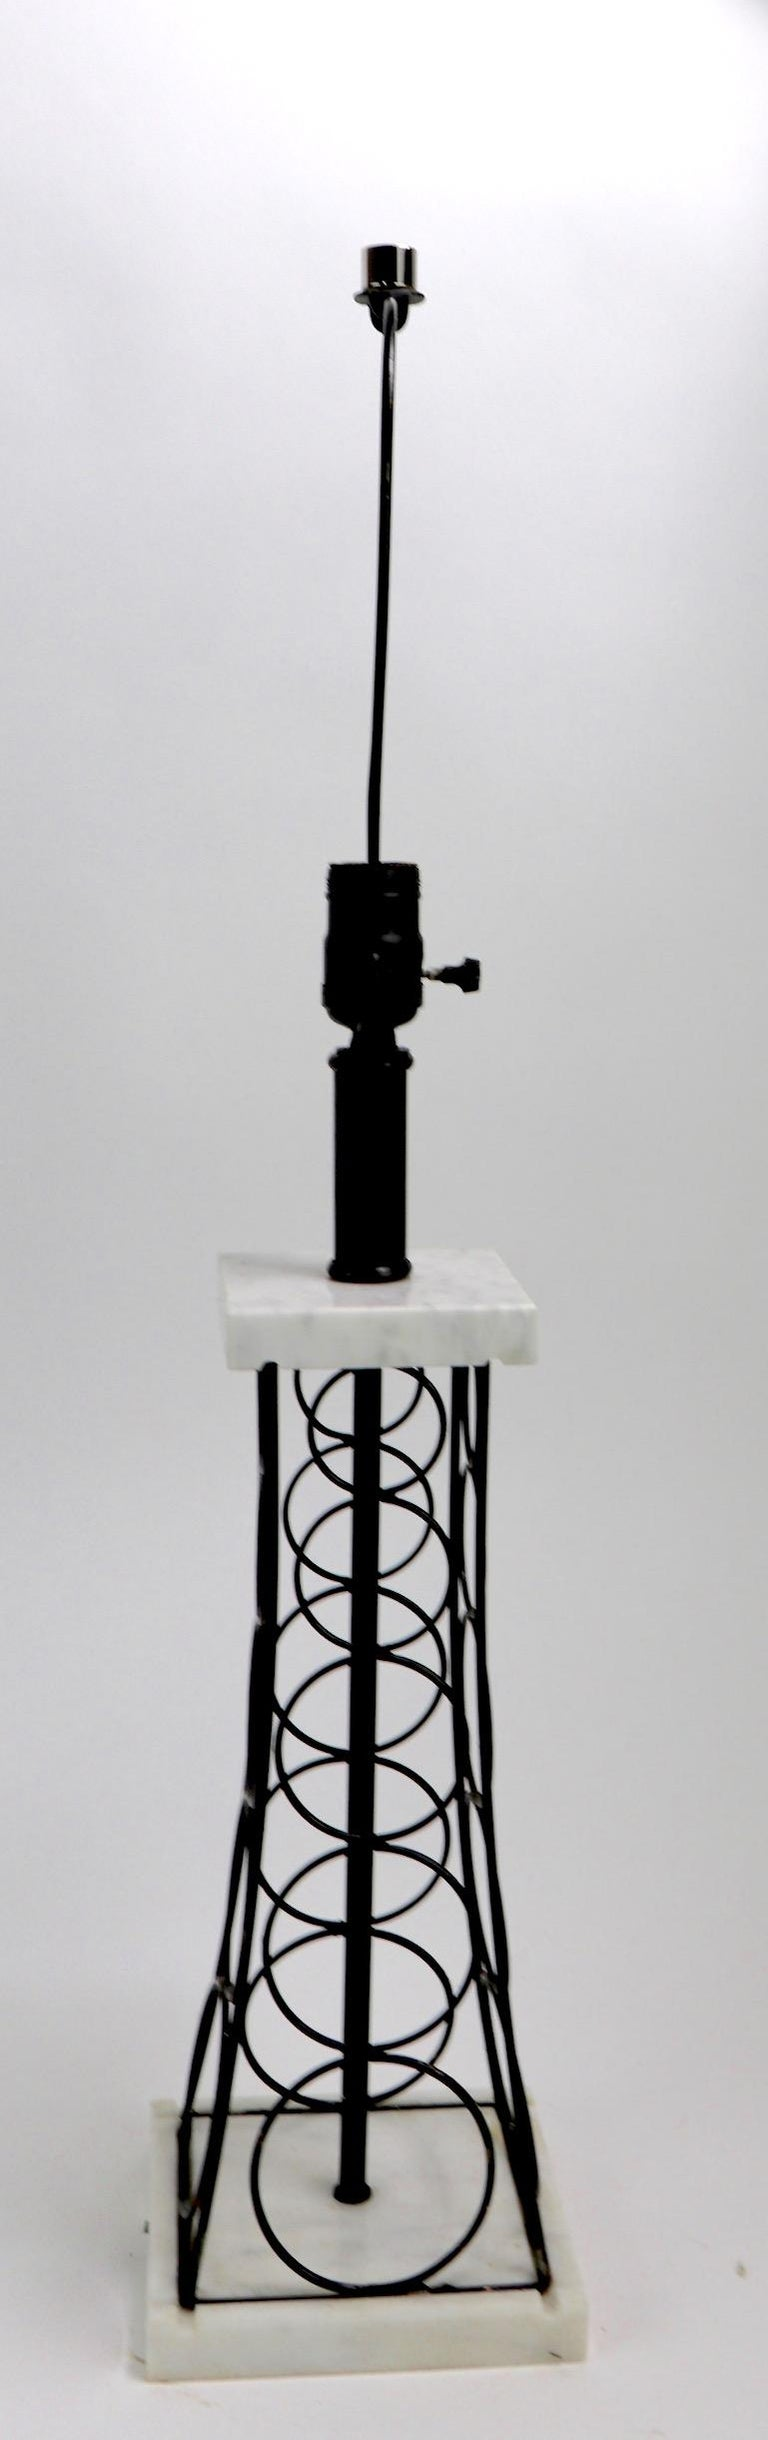 Mid-Century Modern Wrought Iron and Marble Eiffel Tower Oil Derrick Form Table Lamp After Weinberg For Sale